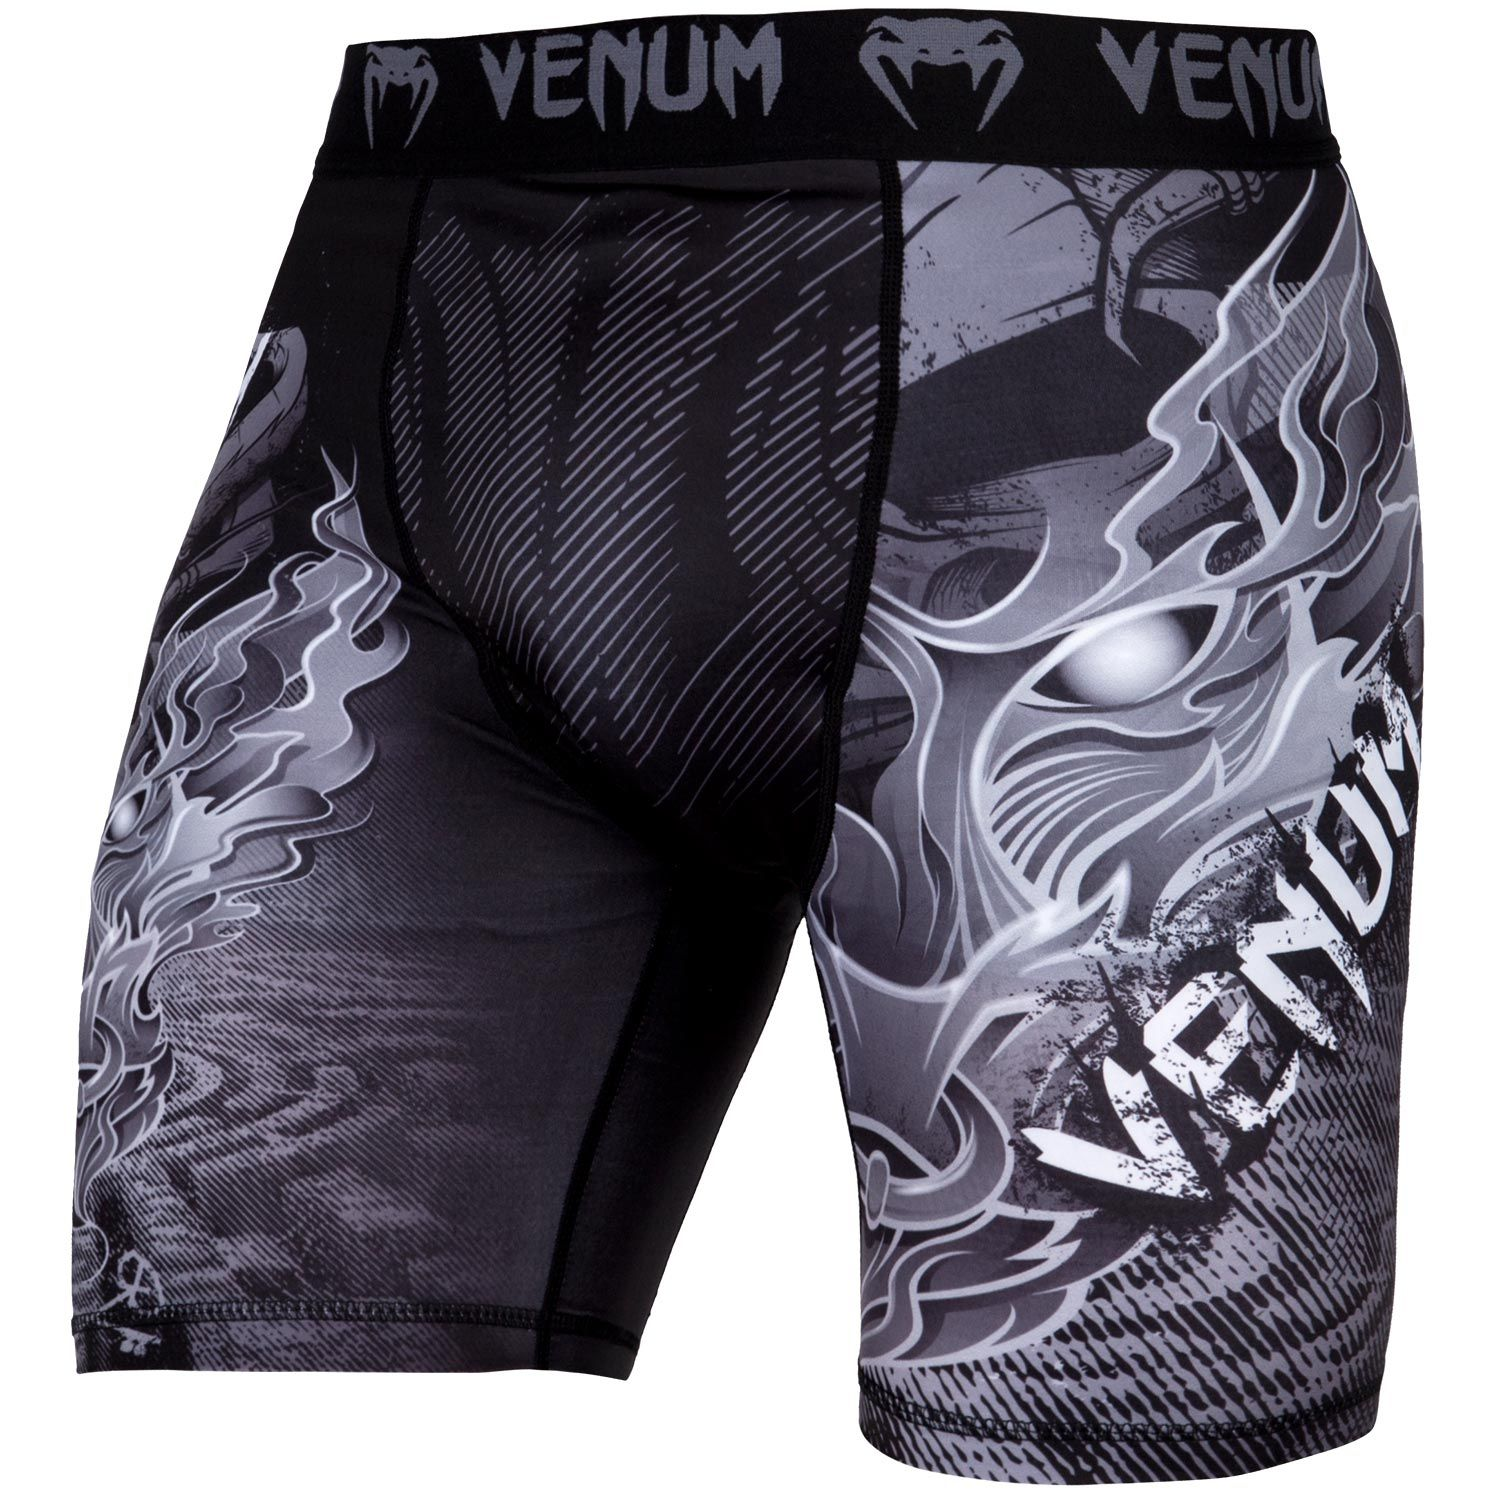 Venum Minotaurus Compression Shorts - Black/White